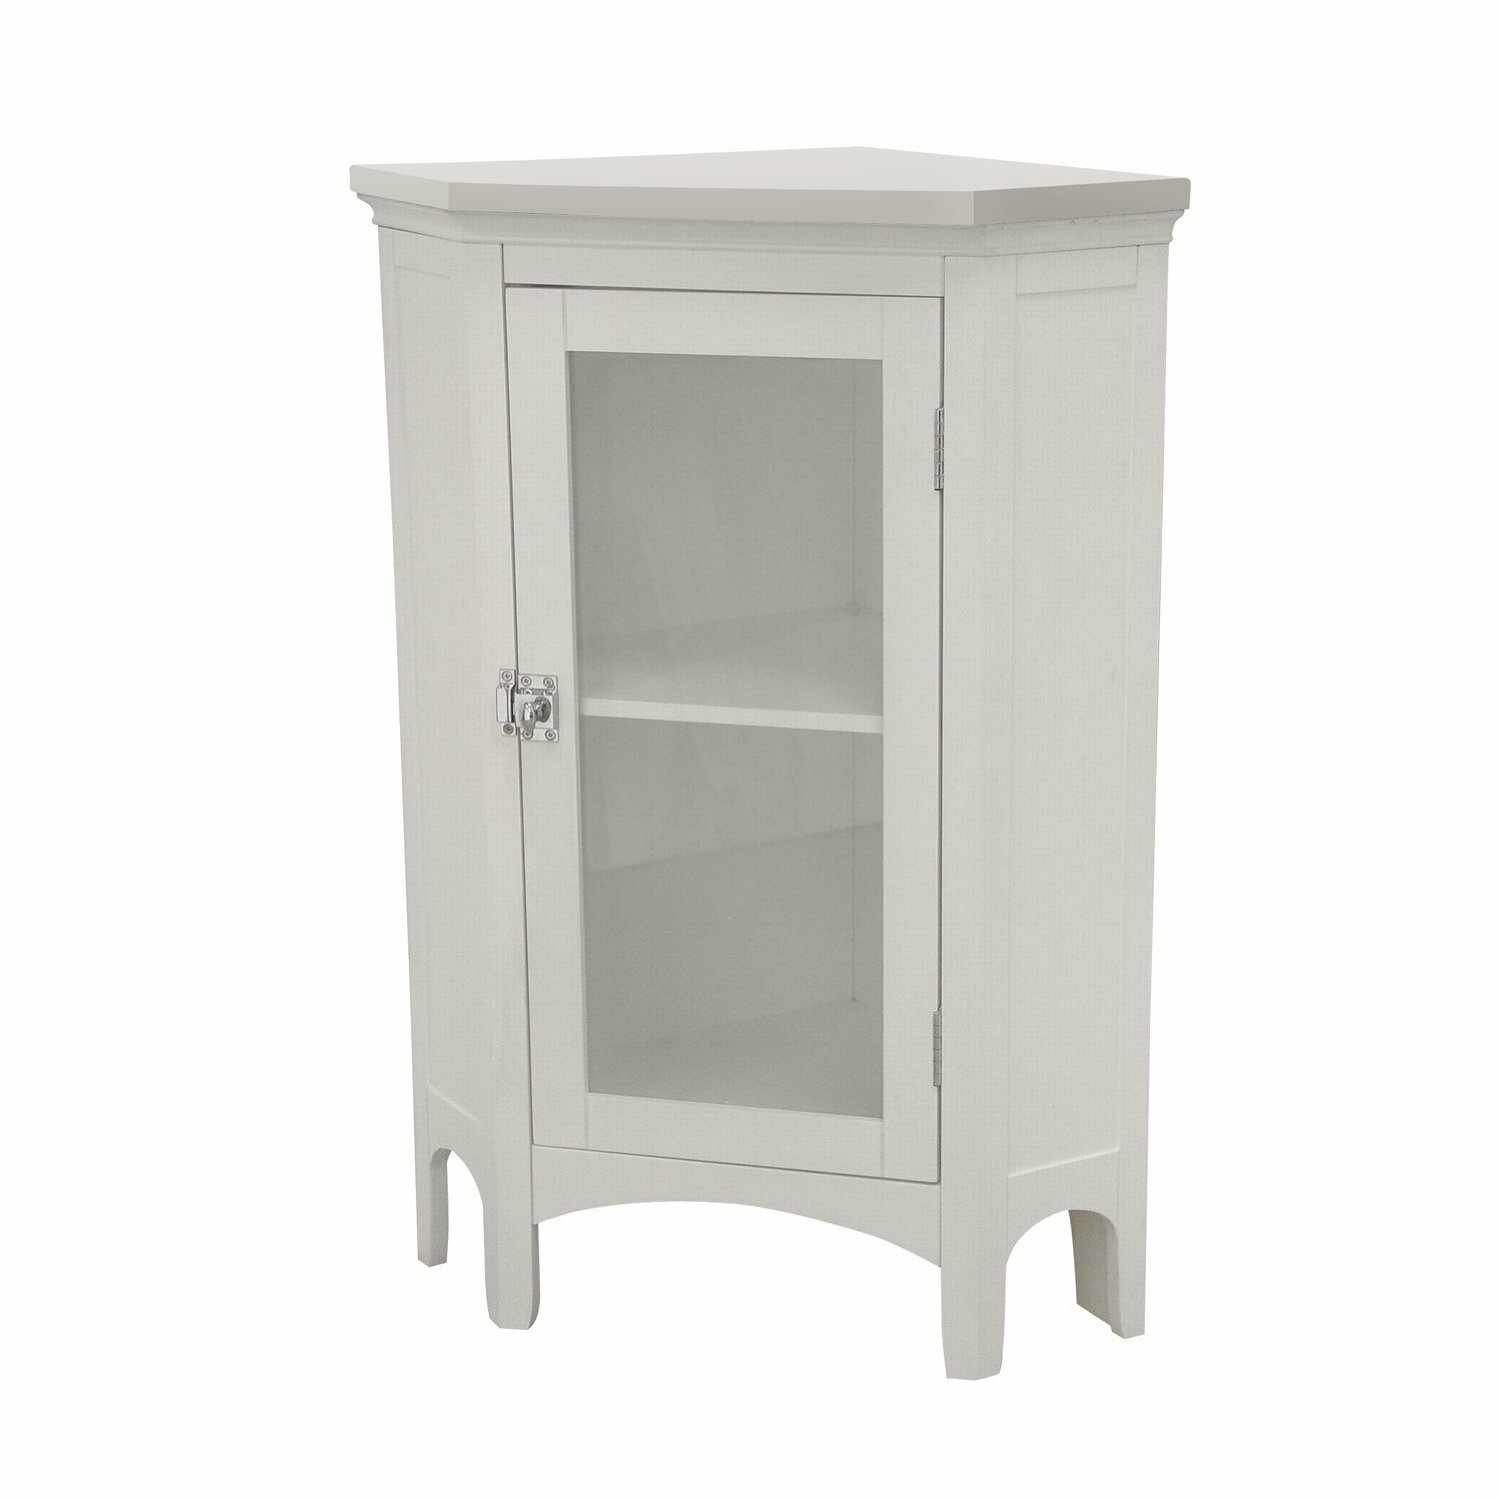 Beachcrest home sumter corner freestanding floor cabinet for Floor standing corner bathroom cabinet